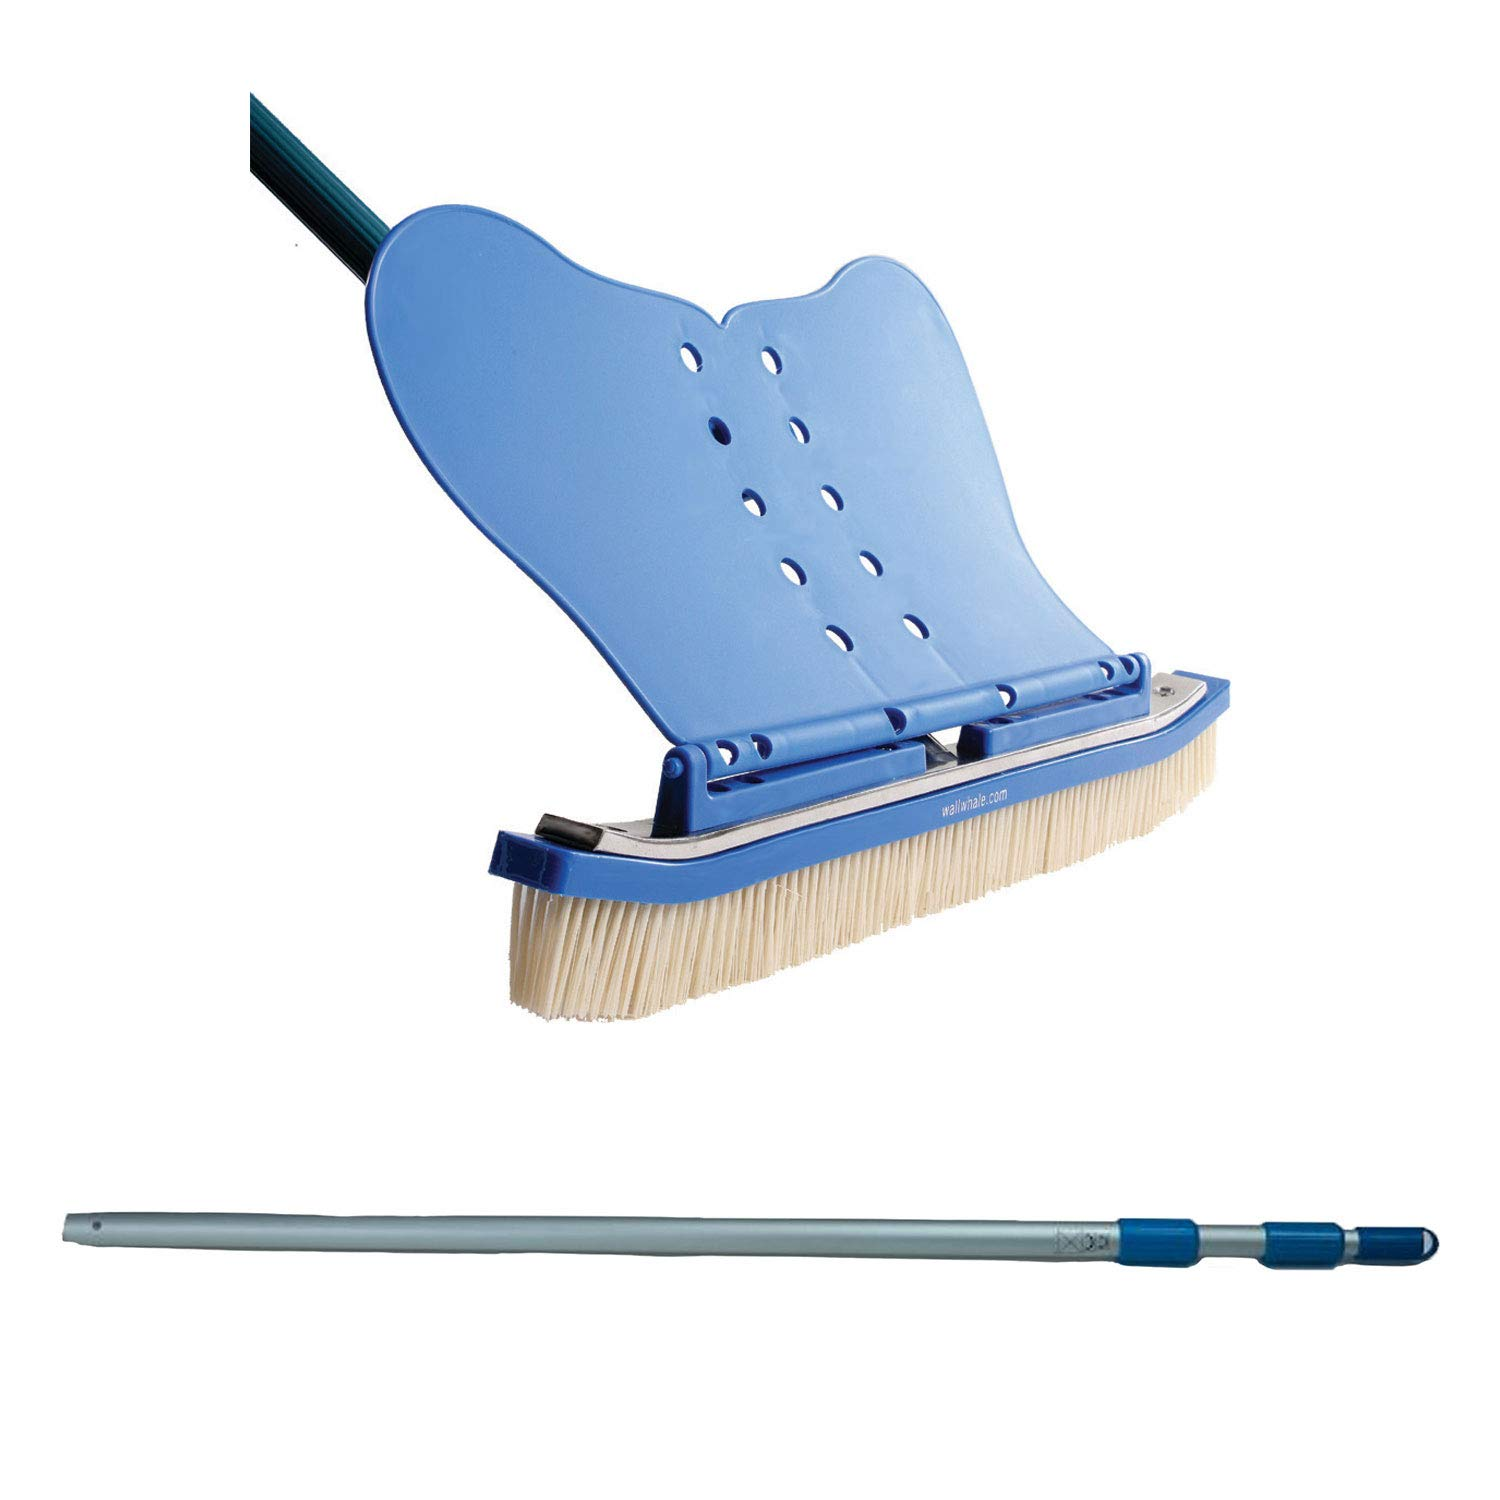 Wall Whale Classic 18 Inch Pool Wall Cleaning Brush + 94 Inch Telescoping Pole by Wall Whale